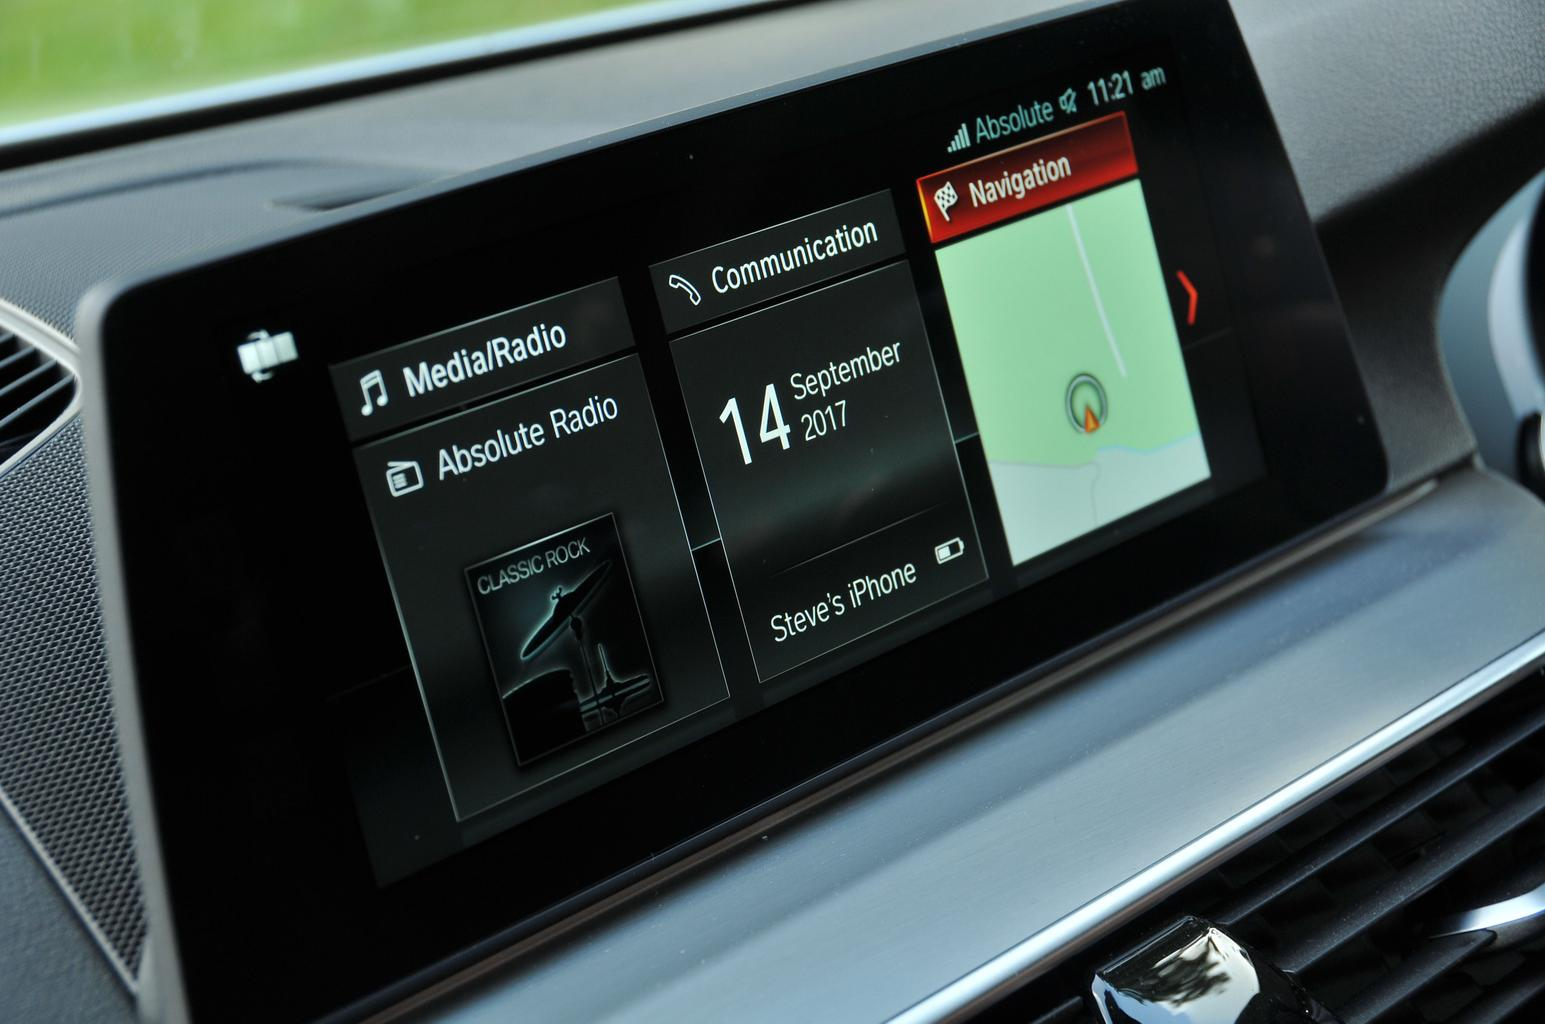 BMW 5 Series: Communication